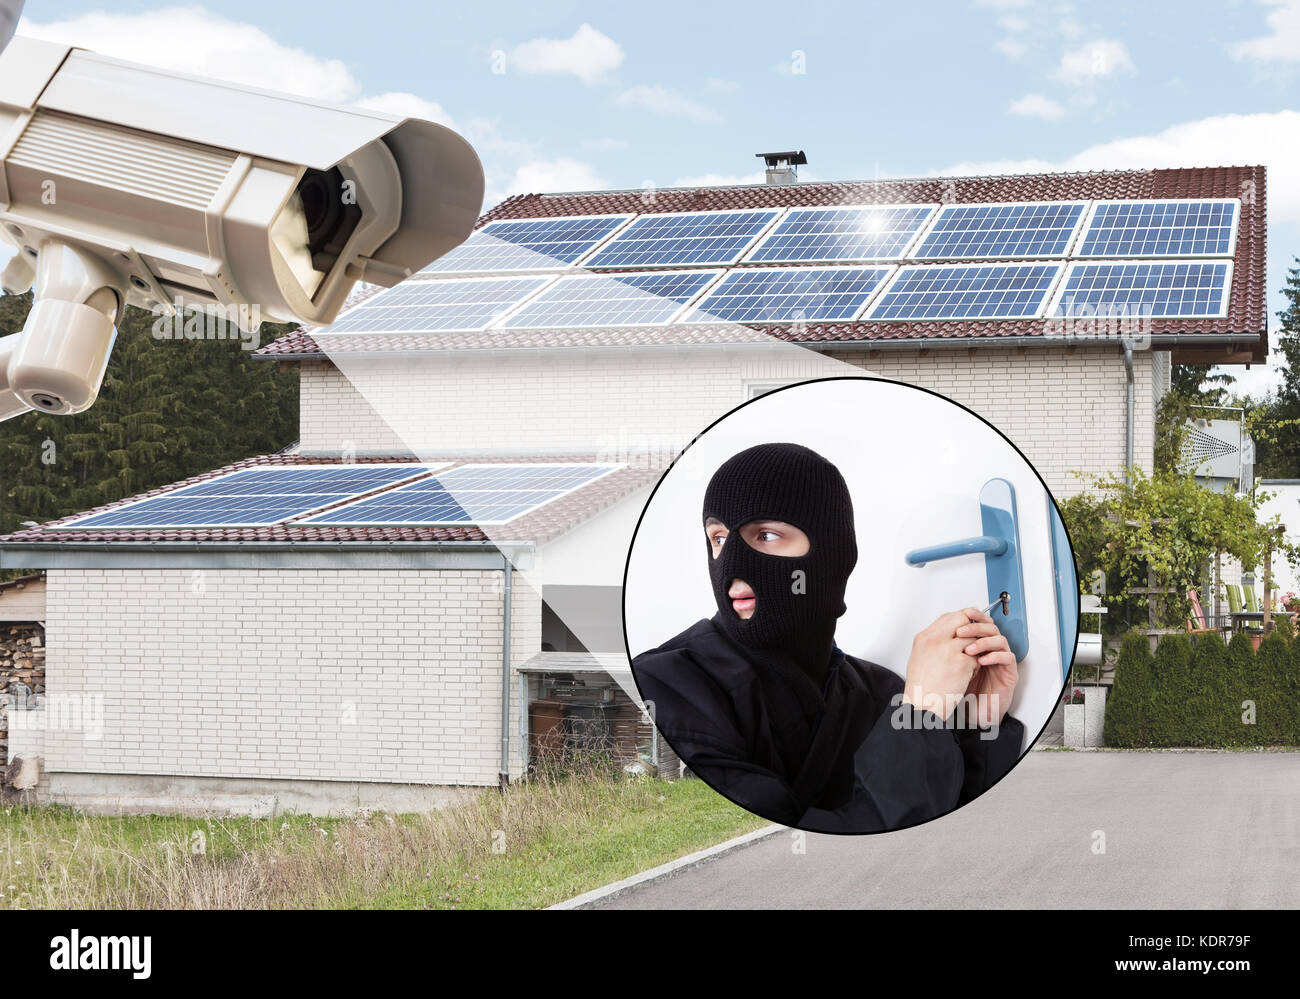 Security Camera Capturing Thief Trying To Enter The House While Opening Door Lock - Stock Image